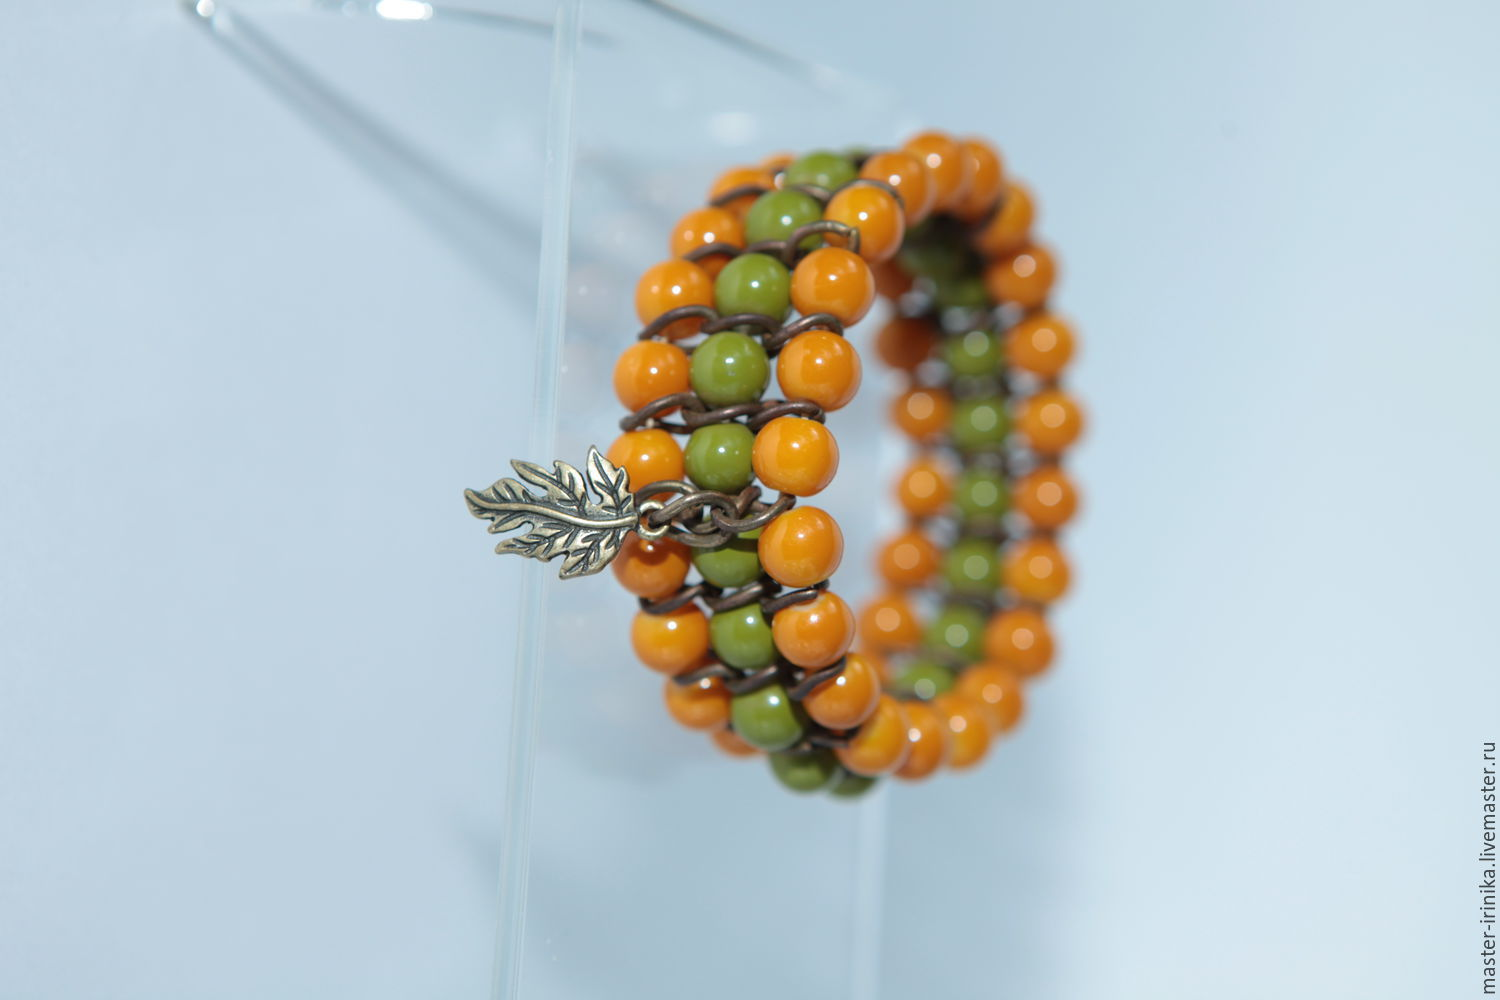 Bracelet Forest Tale in green and terracotta tones Irinika . Workshop of images by Irina N. Jewellery creating an image Photo by the author of the work performed .